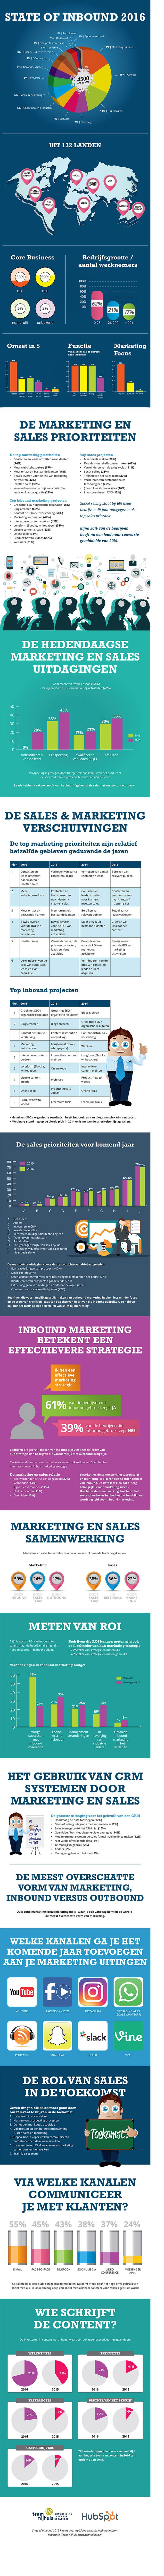 State of inbound 2016 Infographic Team Nijhuis